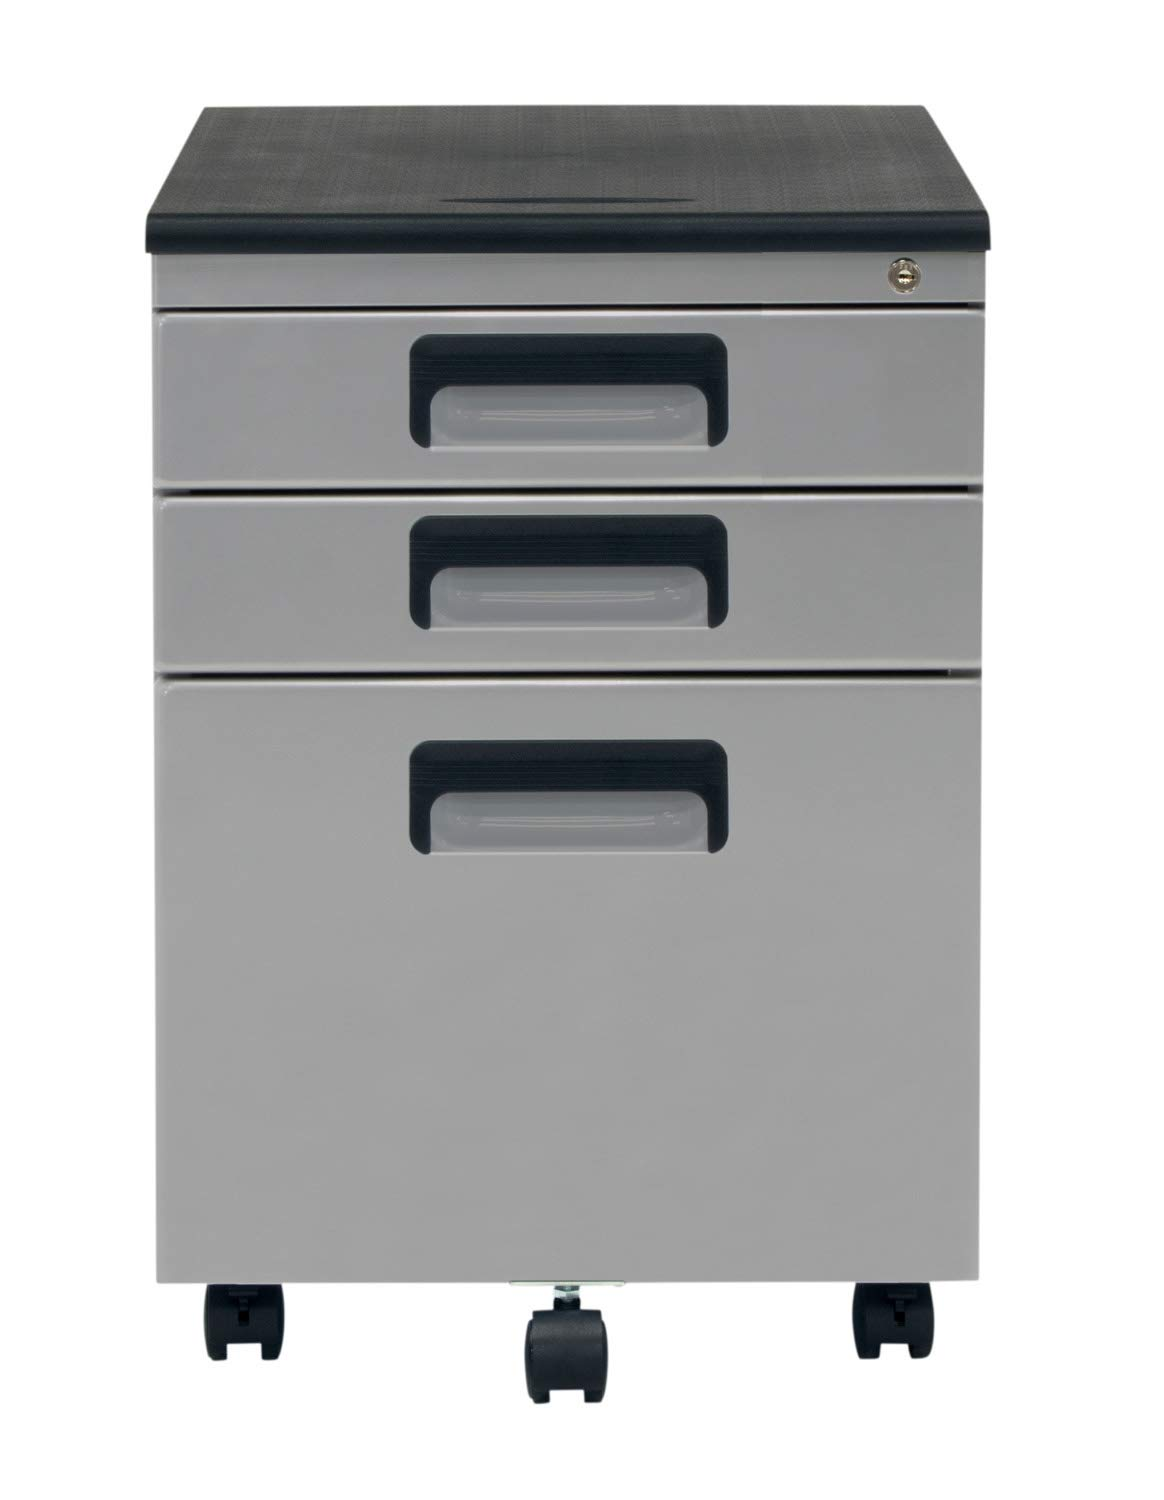 Offex 3 Drawer Metal Rolling File Cabinet with Locking Drawers - Silver/Black